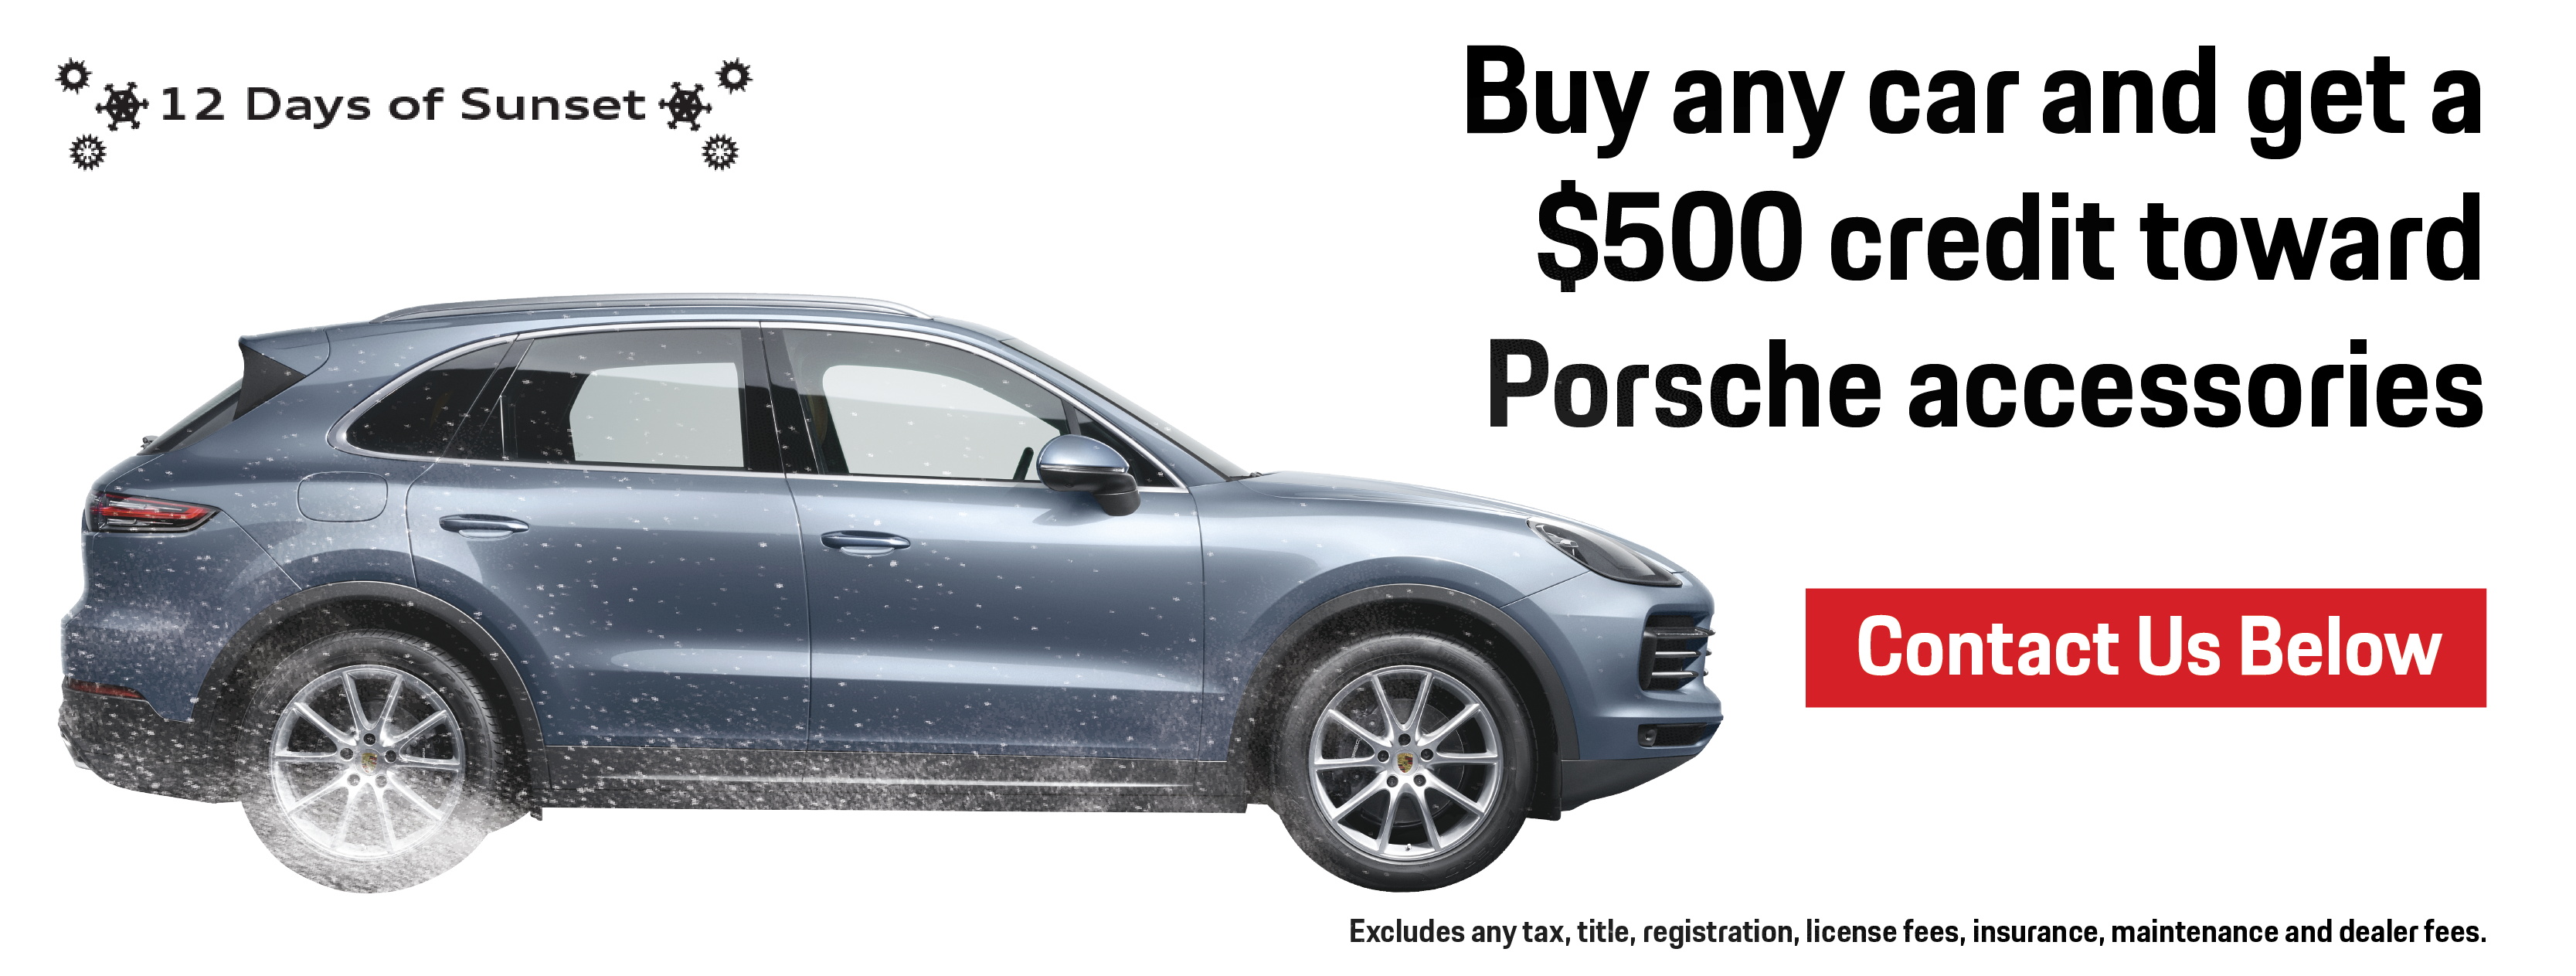 12 Days of Sunset   Day 4   Buy any car and get a $500 credit toward Porsche accessories   Contact Us Below